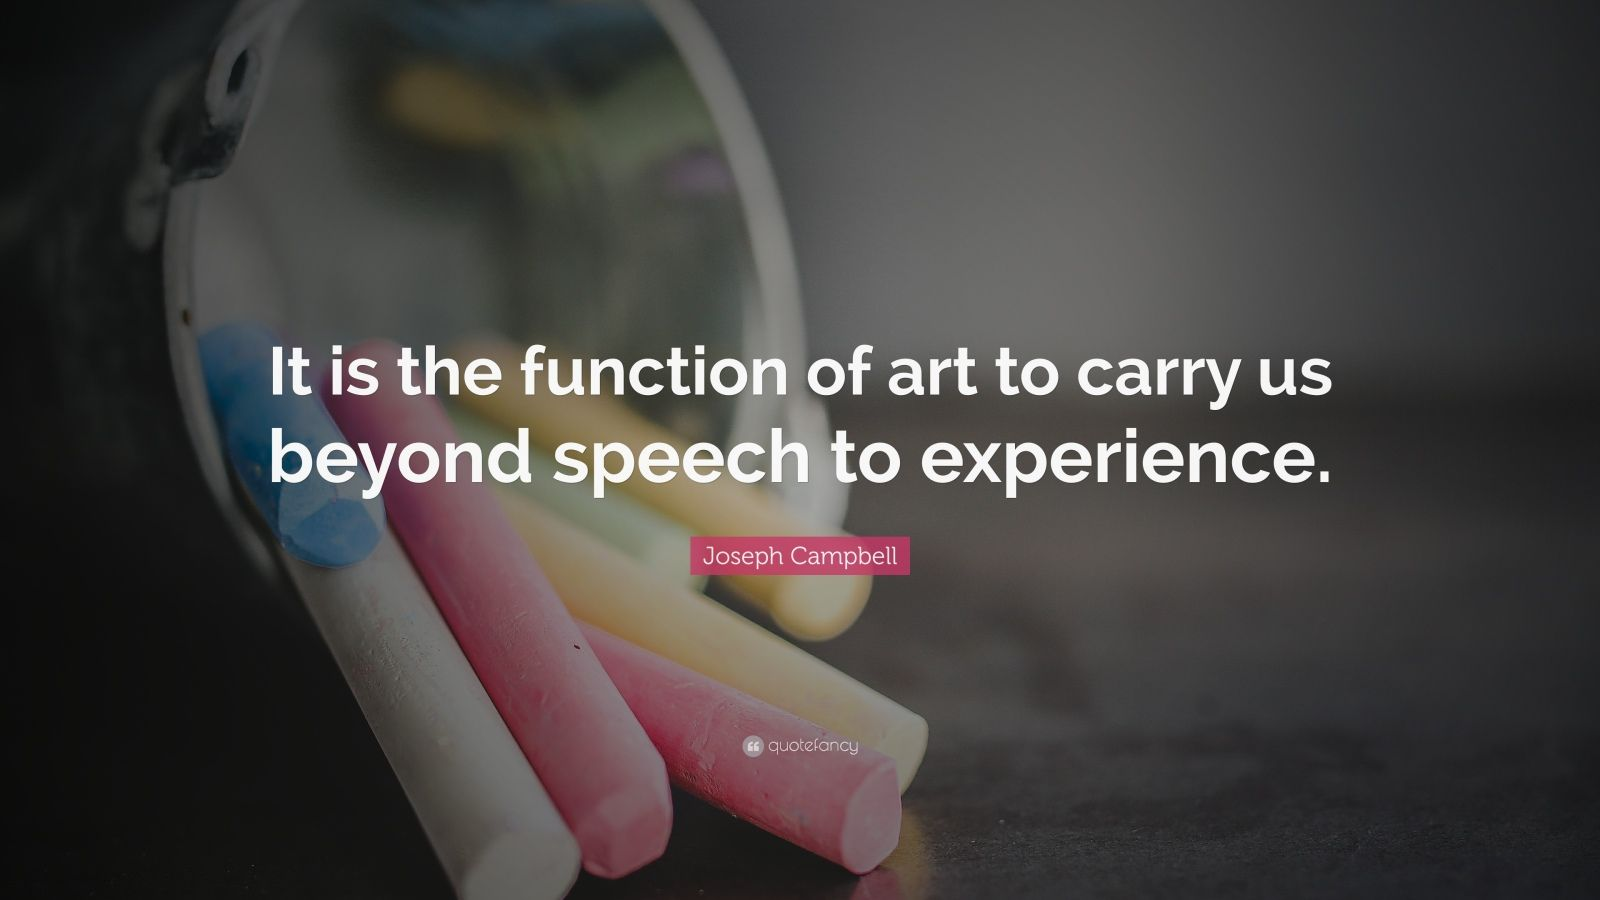 """Joseph Campbell Quote: """"It is the function of art to carry us beyond speech to experience."""""""